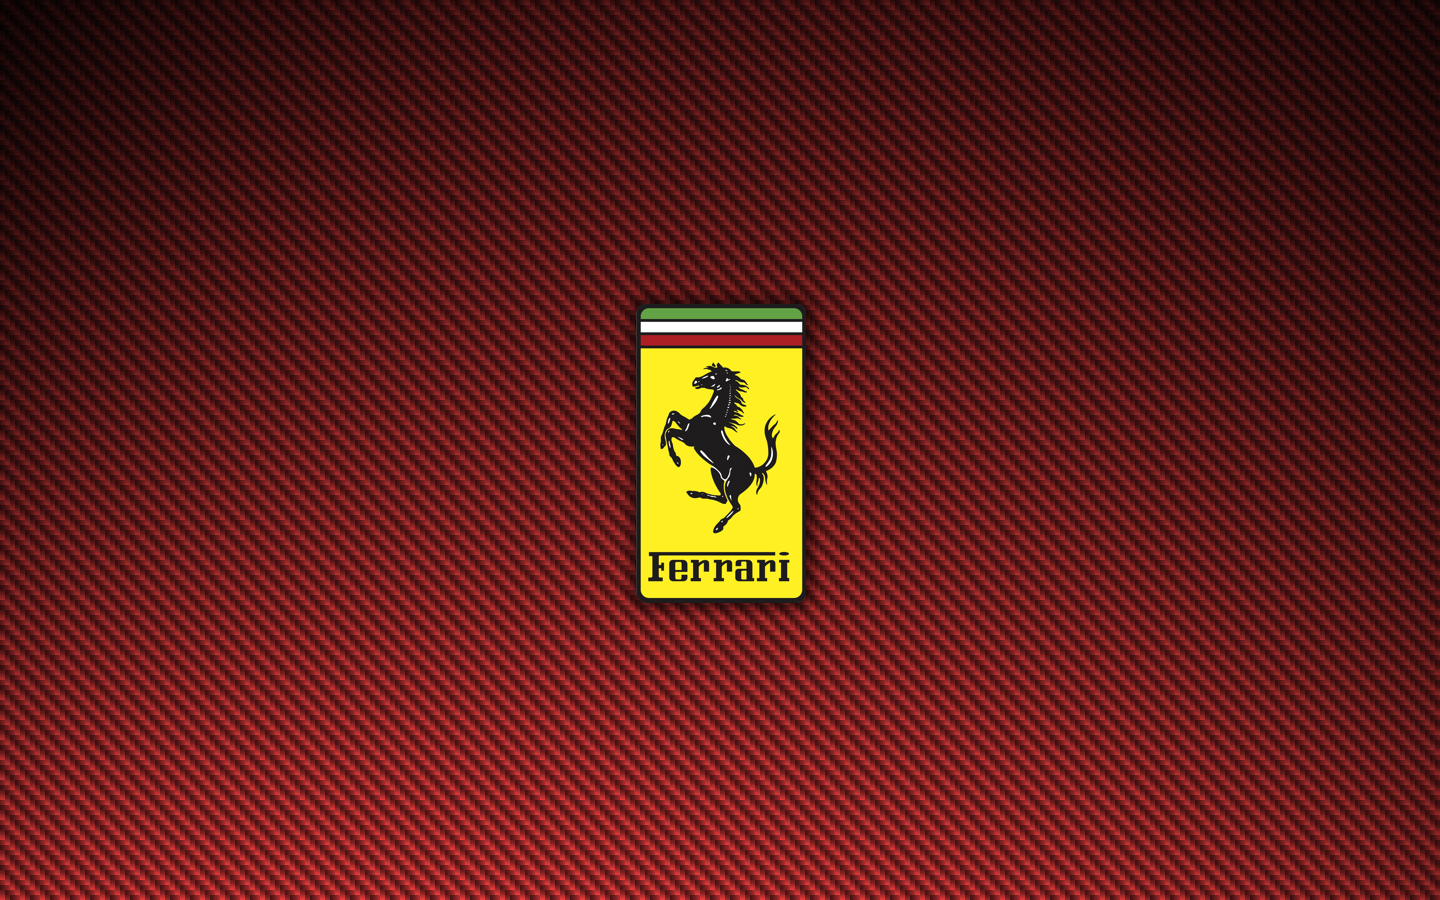 Red Ferrari Background